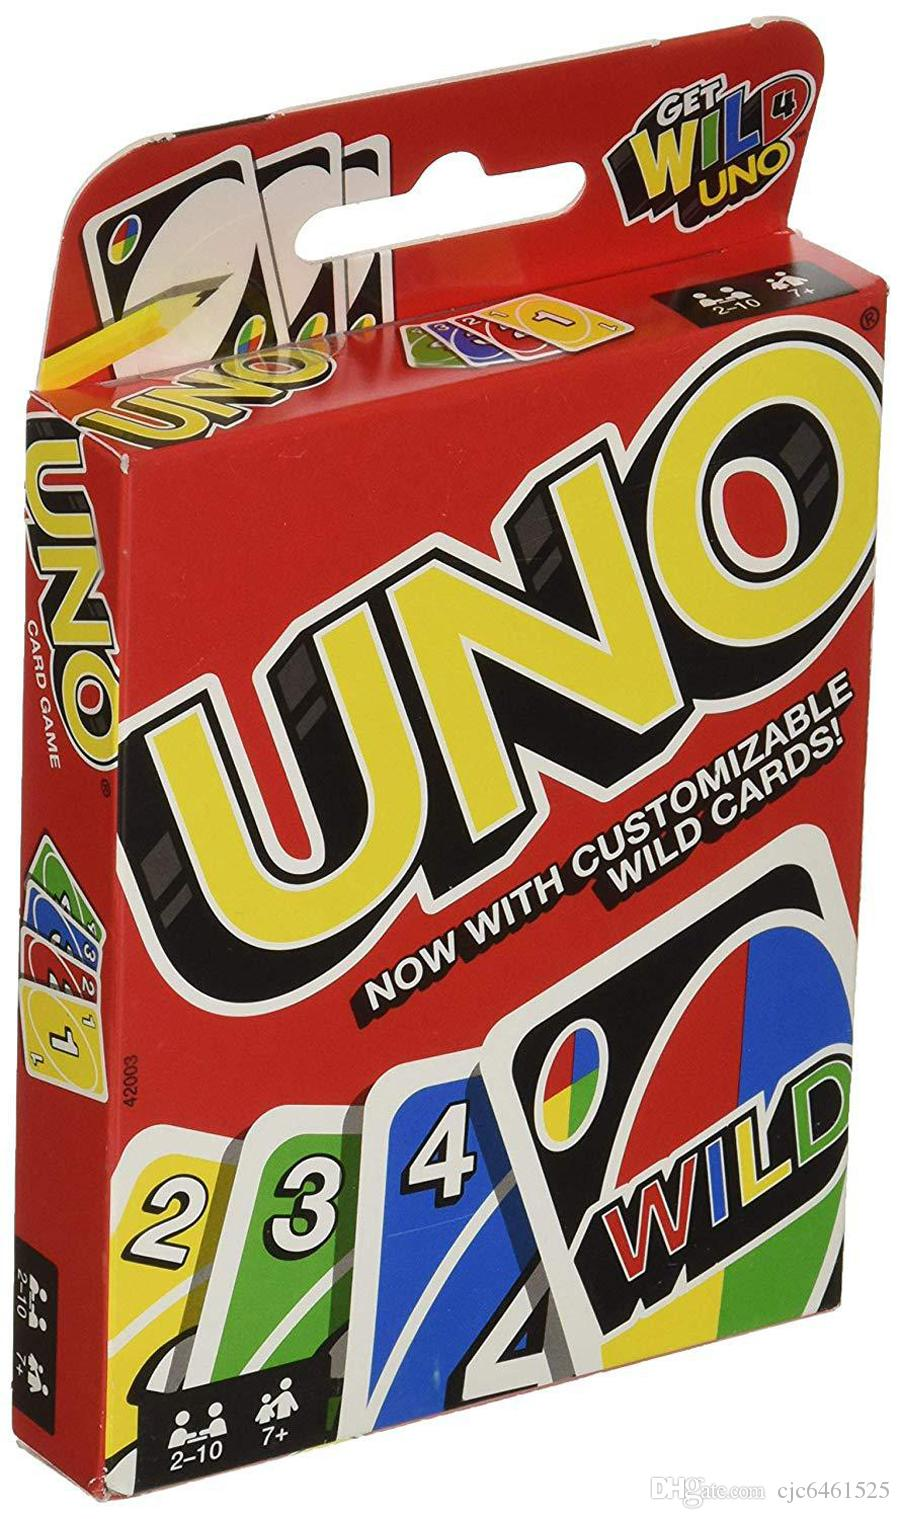 UNO Card Games Wild DOS Flip Edition Board Game 2-10 Players Gathering Game Party Fun Entertainment